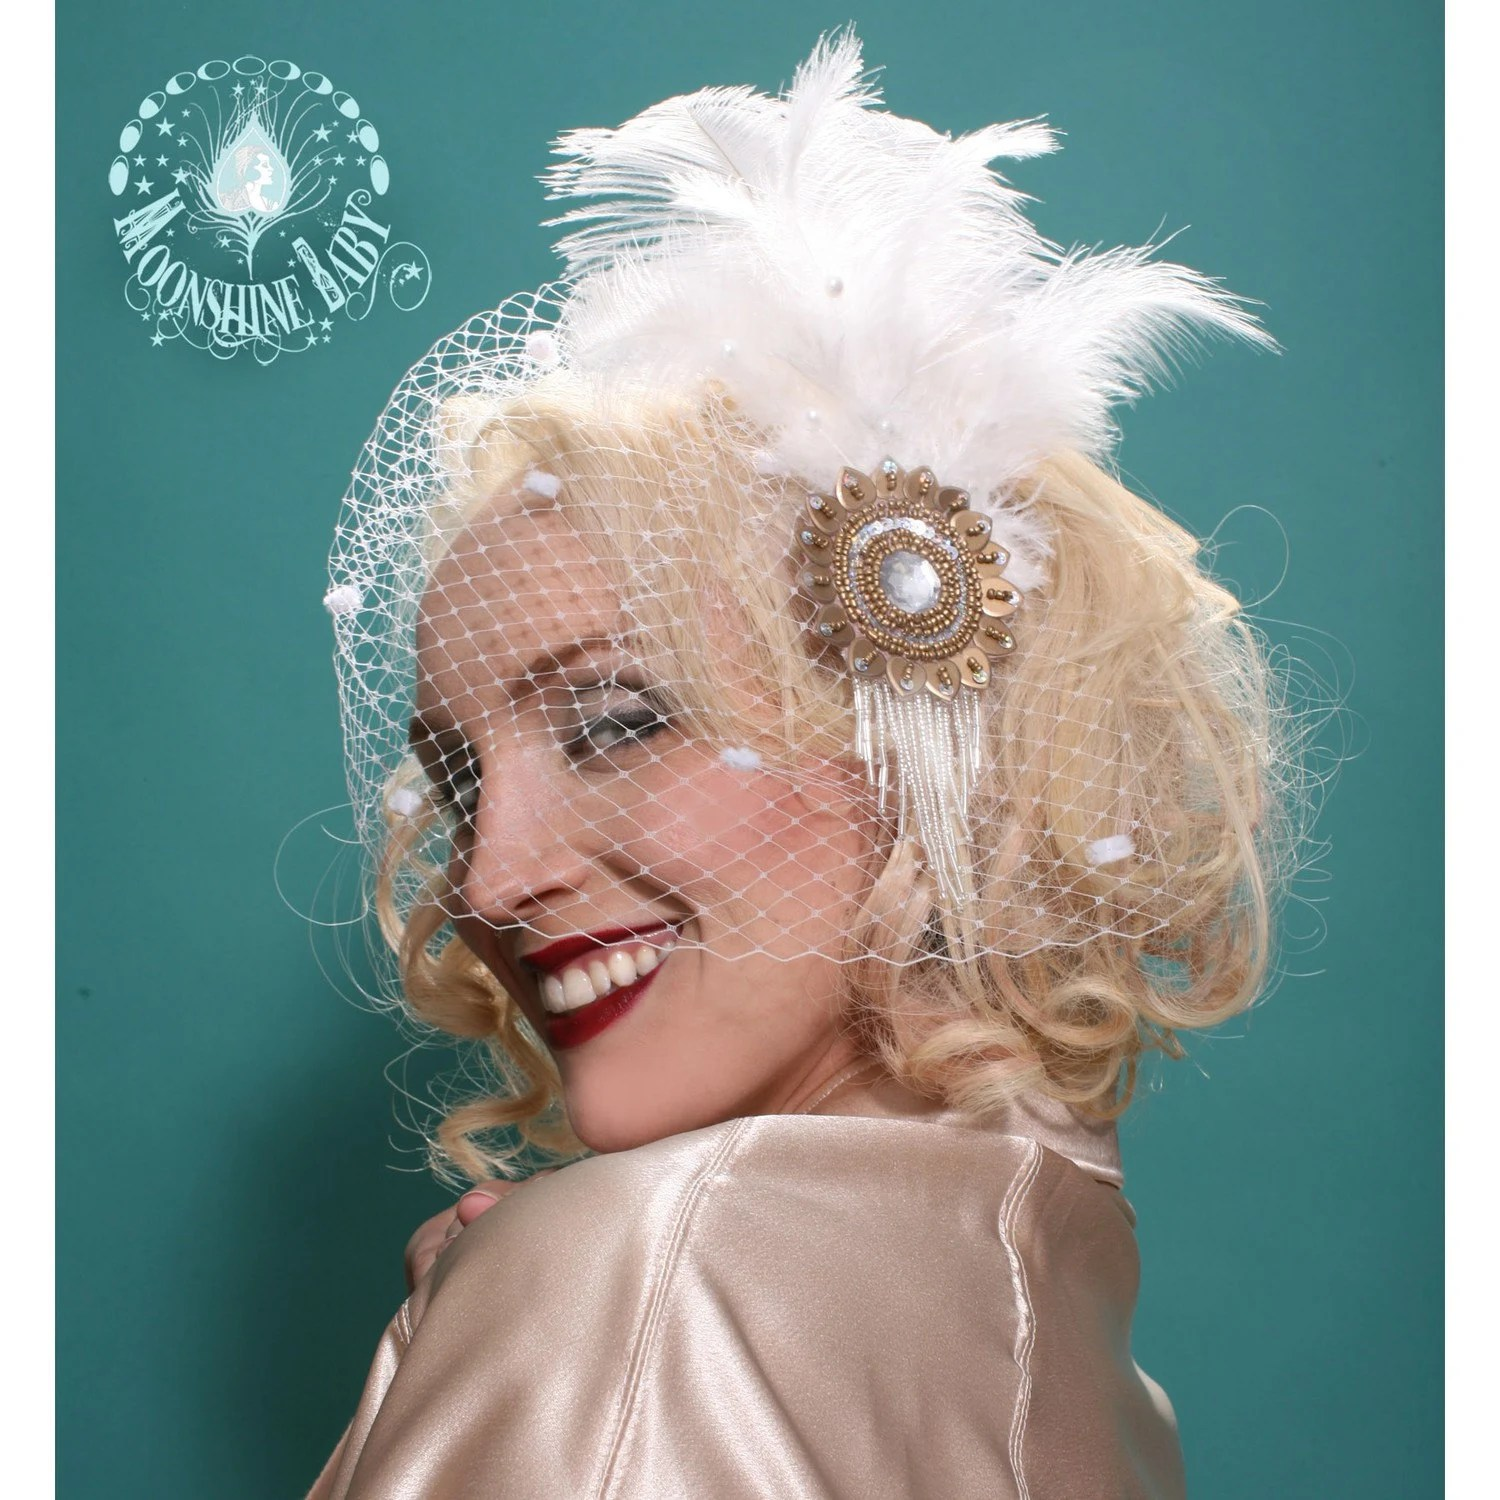 Ivory and Gold Sunburst Flower Fascinator w/ Ostrich Feathers - Art Deco Revival - by Moonshine Baby